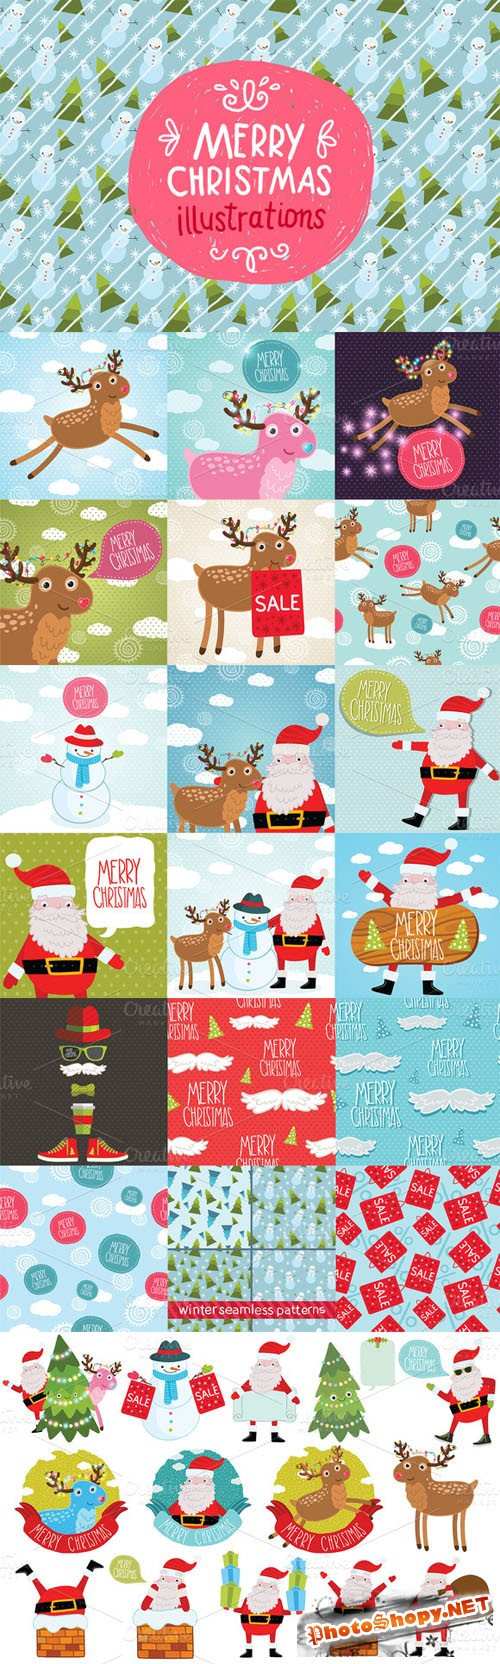 Creativemarket - Merry Christmas illustrations 16863